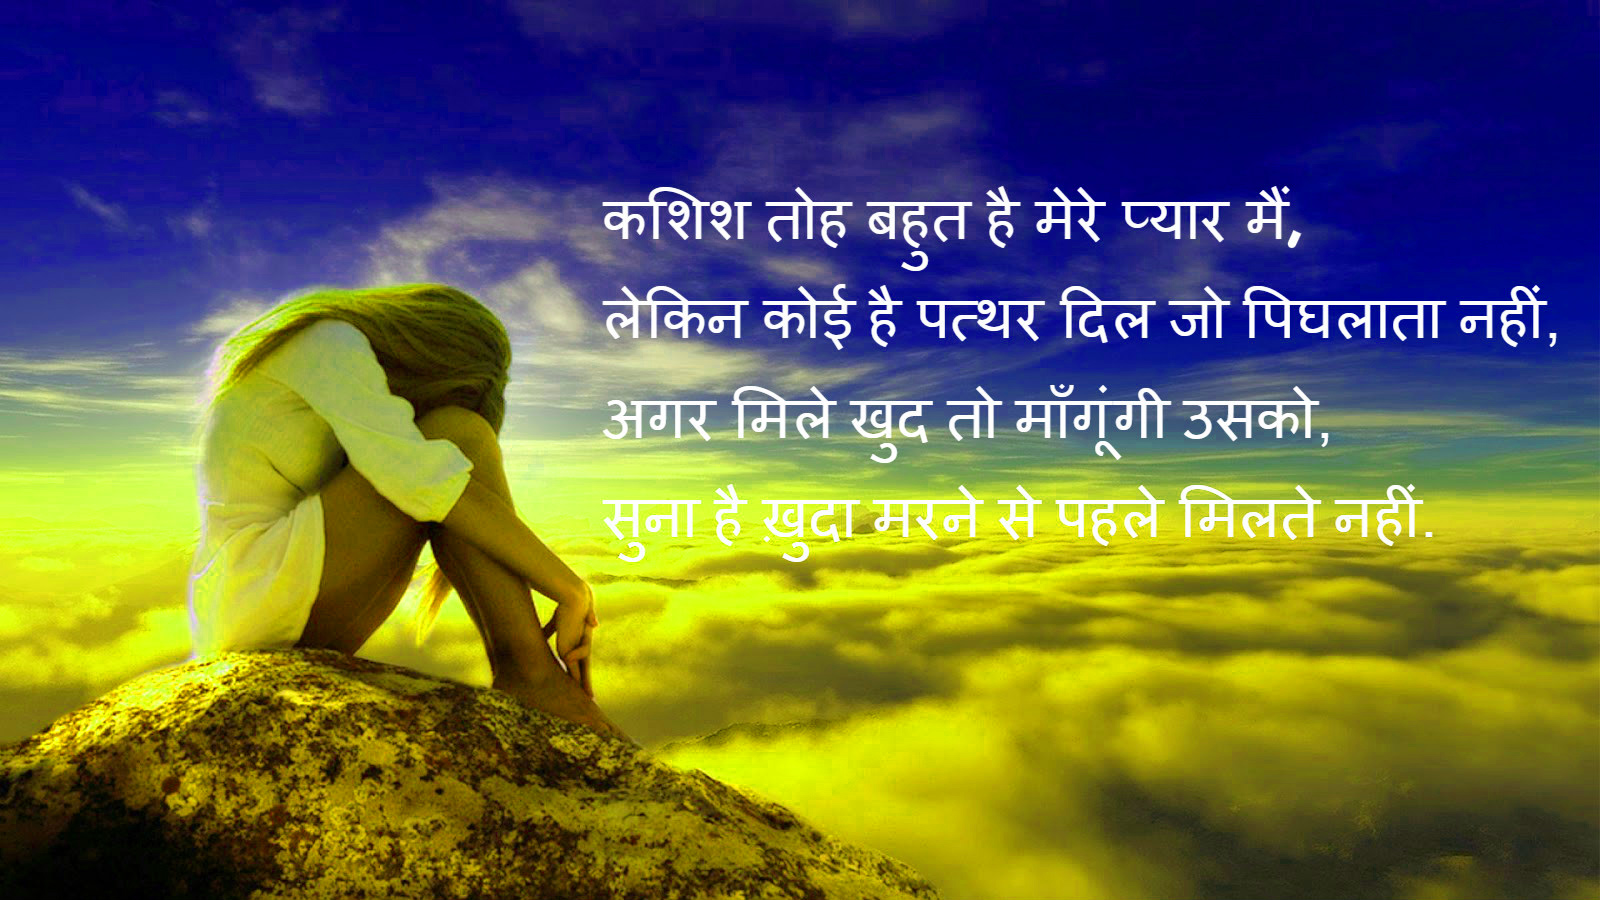 Hindi Bewafa Shayari Images Wallpaper pics for Whatsapp